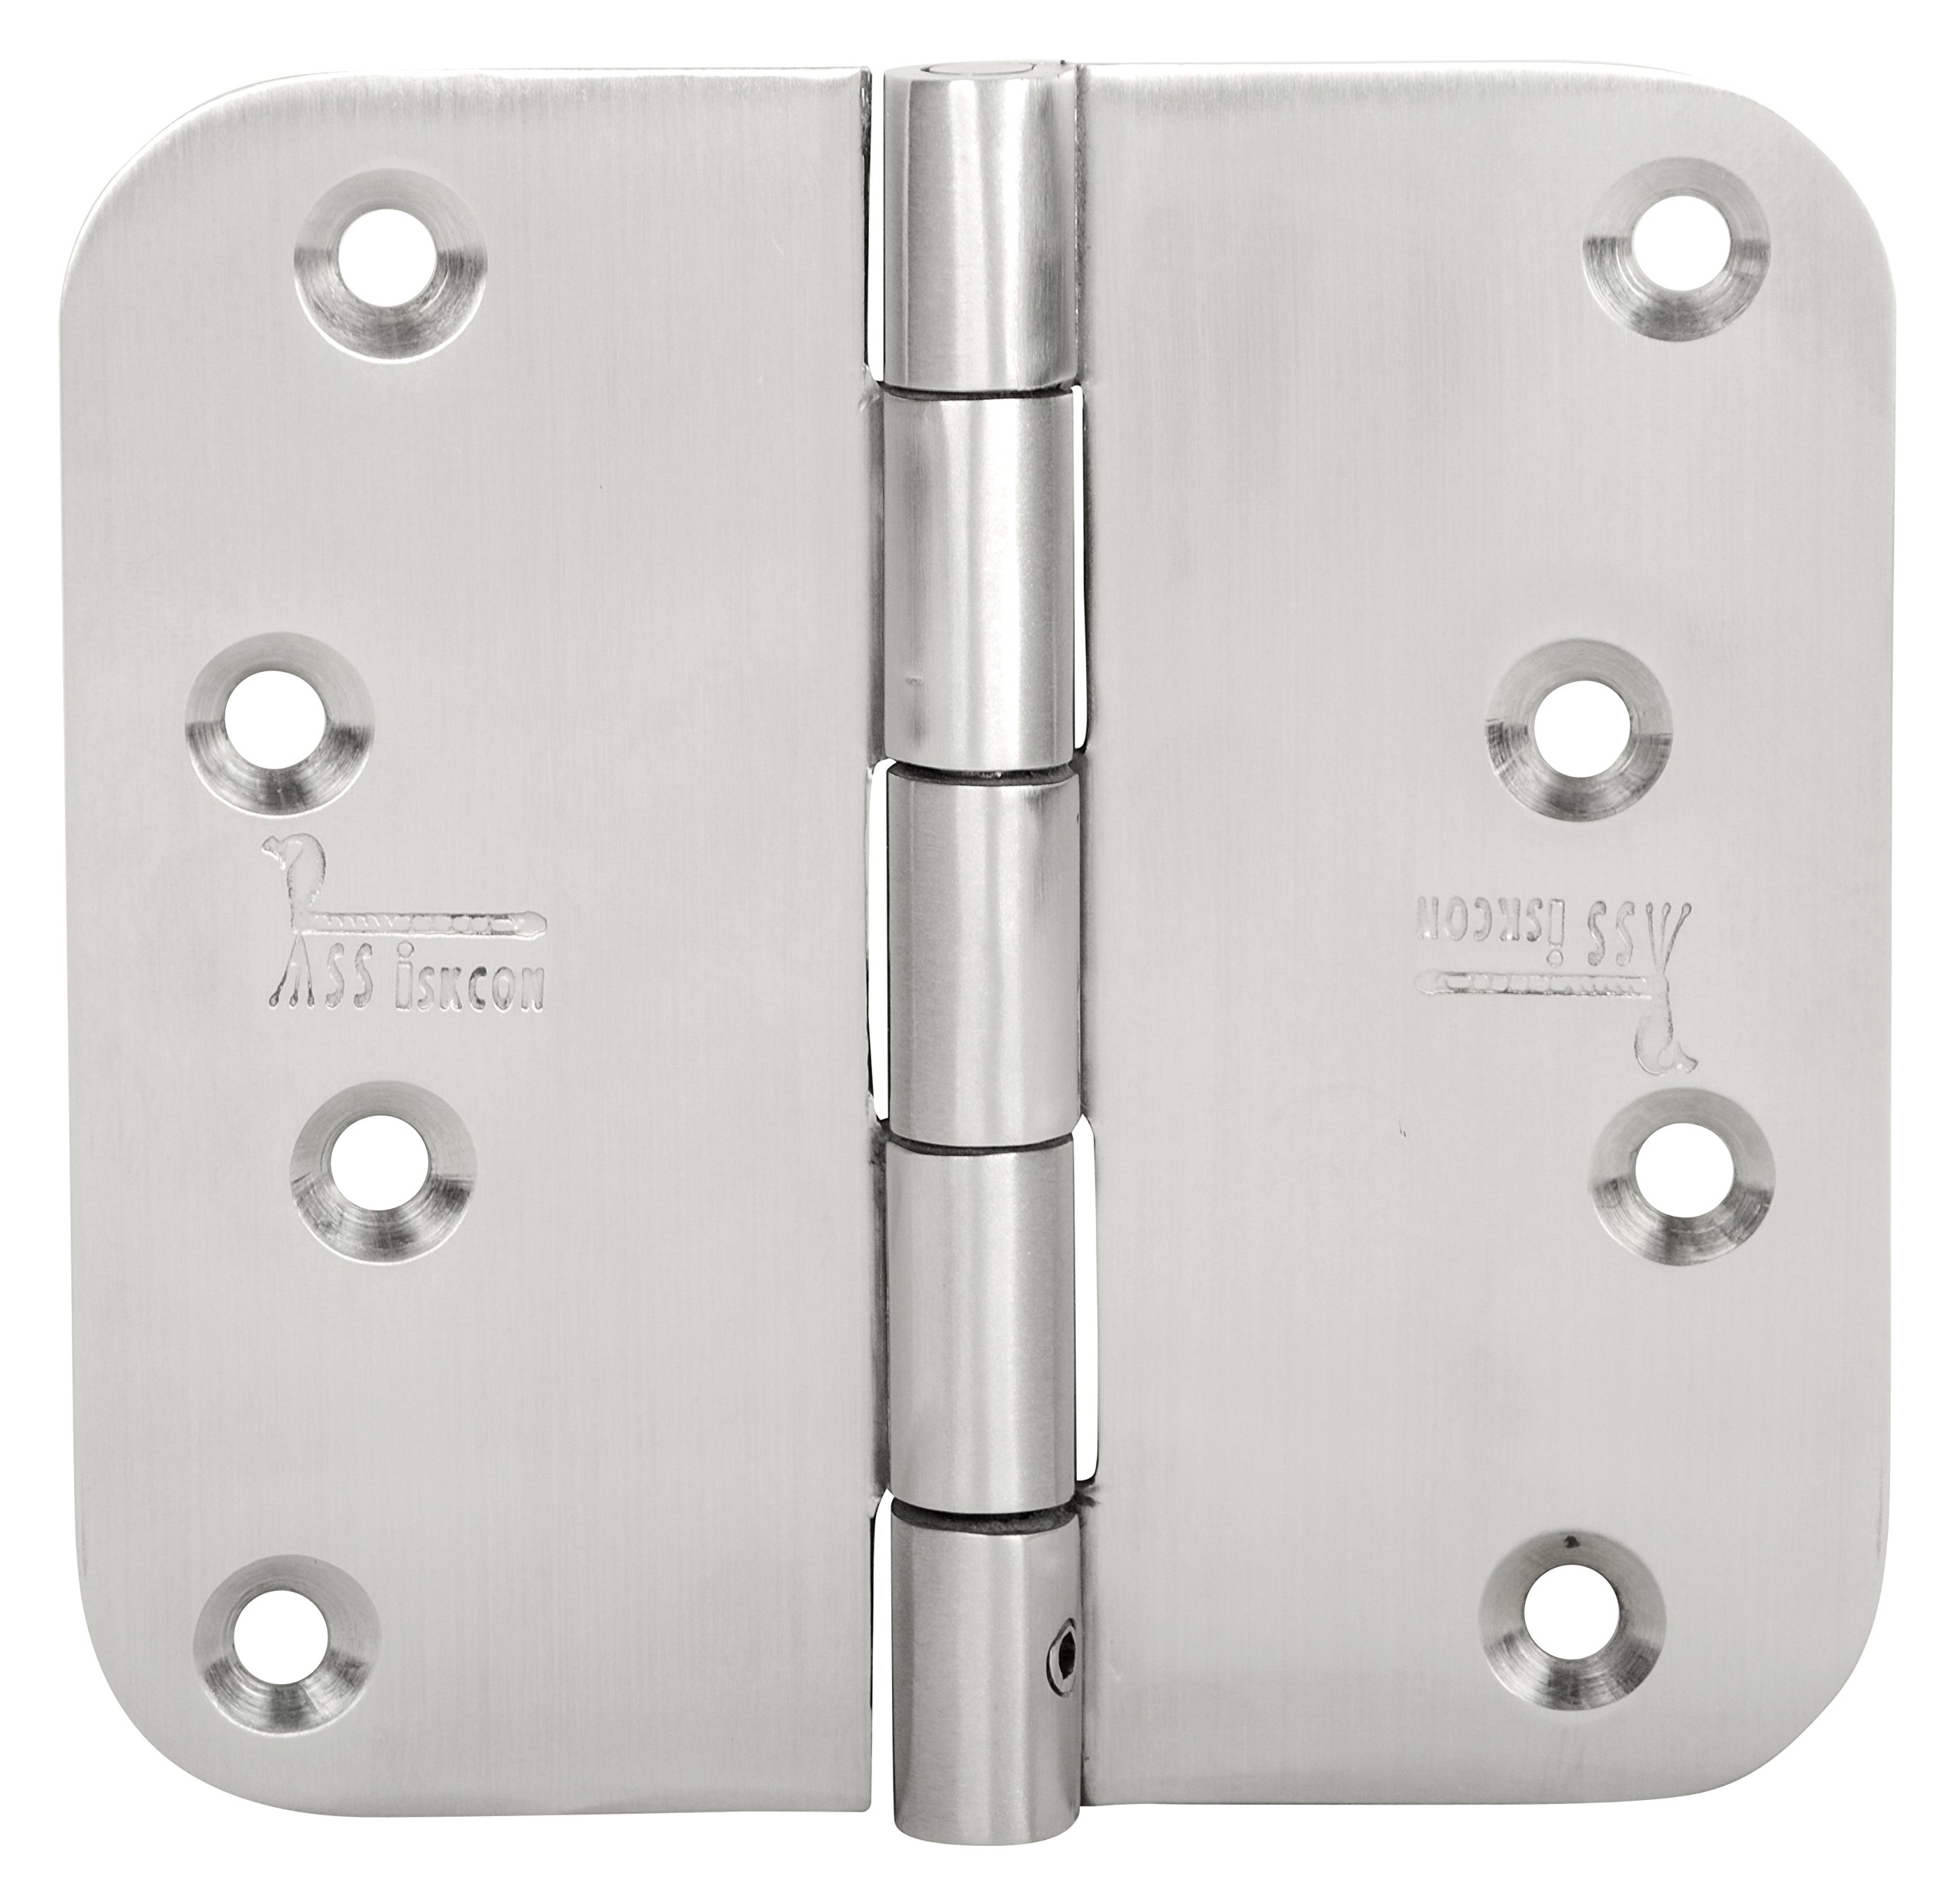 SSiSKCON 4 INCH STAINLESS STEEL GATE Hinge With Removable Pin,4''X 4'',Satin Finish,Hgs-404025Rb-Sb-32D, 5/8 Radius, Heavy Duty.(3Pcs HINGES With 24 Screws)Reversable Technic (Inswing & Outswing Doors